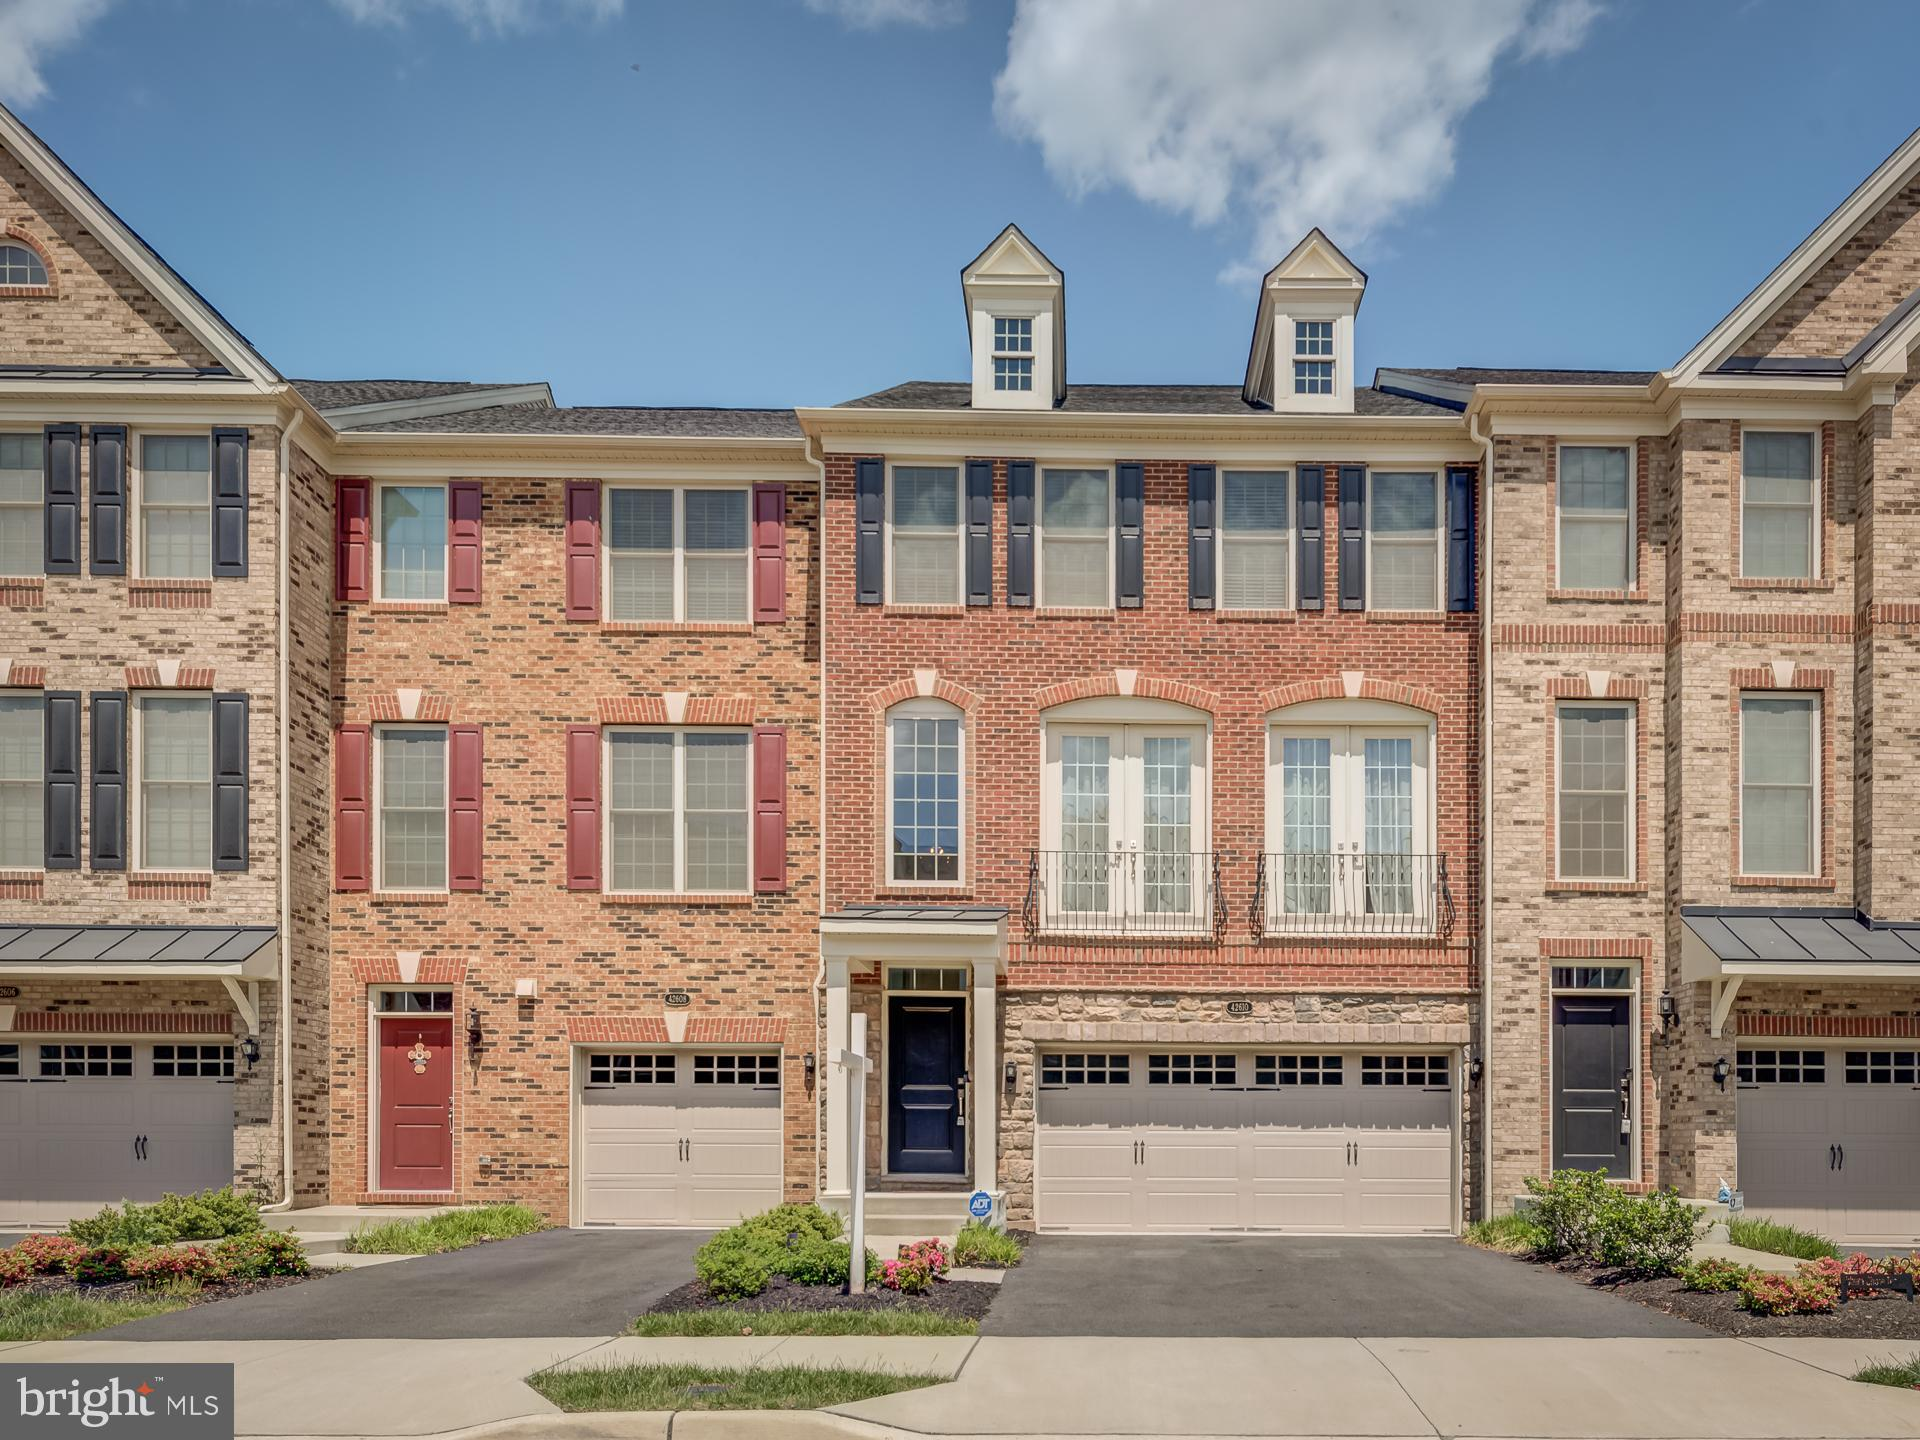 *Back Active  - Prior Buyer lost financing* Welcome home to this immaculate 3 Level 3 BR/3.5 BA Bradbury Georgetown unit with a stunning brick front in the popular amenity rich Avonlea community! This literally brand new unit features close to 3000 square feet in this light filled home that features tons of upgrades! This Turn-Key home features extensive upgrades including: Sparkling Hardwood flooring, upgraded kitchen with SS appliances, double oven, Nest system, built-in microwave, granite countertops with an oversized island perfect for early morning coffee, tile backsplash, 4 burner gas cooktop, upgraded powder room. The main floor features a open floor plan, the entry level features a 2-story foyer with a walkout basement. It also features wainscoting in the dining area and crown molding all around the living room ceiling. From the Kitchen area you can enter the spacious Trex deck with a private tree lined view! This deck will be a perfect place to spend the summer grilling and relaxing. In the Spacious master bedroom you will find an expanded French door entryway with 9+ft vaulted ceilings along with a bonus vaulted ceiling sitting room, 2 large walk-in closets, bathroom with dual vanities, upgraded countertops, shower, and separate luxurious soaking tub. Two additional bedrooms, secondary upgraded full bath, and laundry room with plenty of storage complete the upper level. Zoned heating and cooling throughout the home. The lower level has a third upgraded full bath and plenty of space to enjoy the custom maple oak bar. Walk out to the rear fenced in backyard yard with potential for another patio space. You'll love the oversized two car garage with plenty of additional storage for your recreational equipment. In addition to the garage you have plenty of parking in the driveway as well as  plenty of visitor spots! Enjoy the community pool, tennis courts, jog/walk path, pond, fitness center along with a tot lot, and so much more! Close to Rt. 50, Commuter bus lo